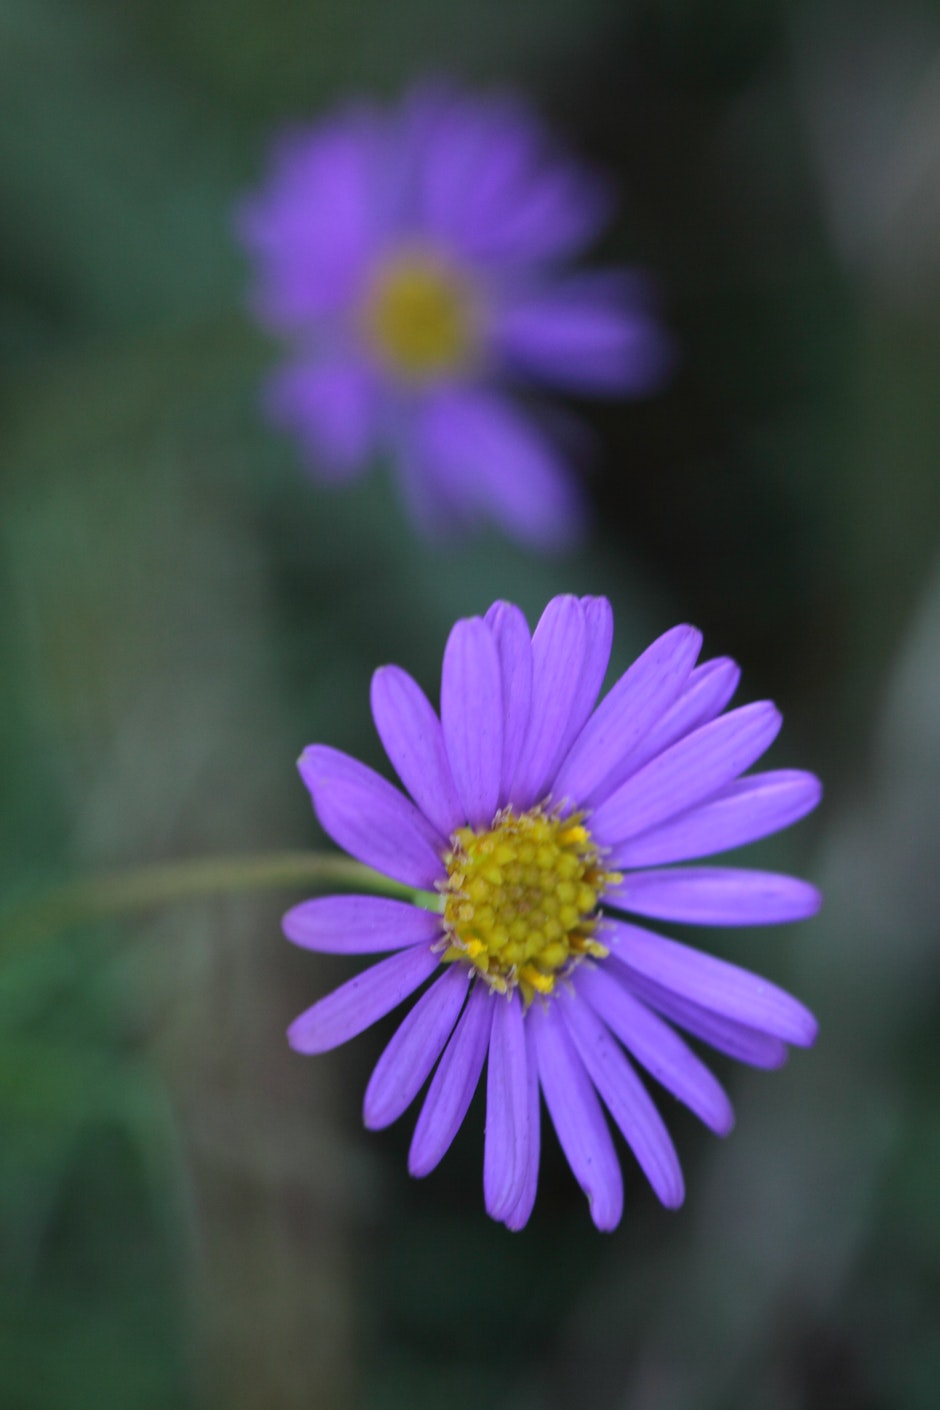 Close Up Photography of Purple Multi Petaled Flower